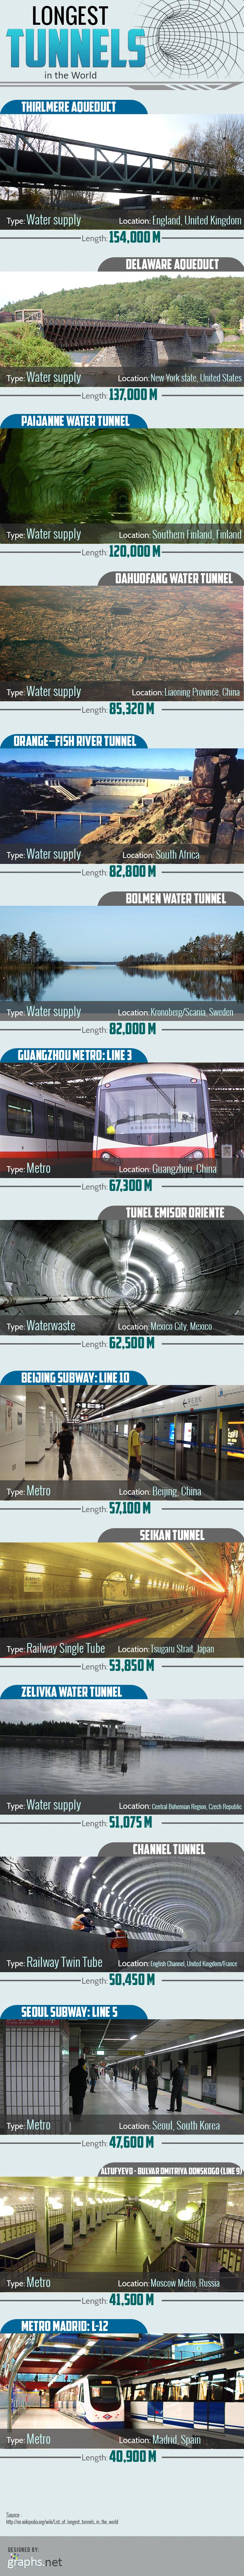 Longest-Tunnels-in-the-World